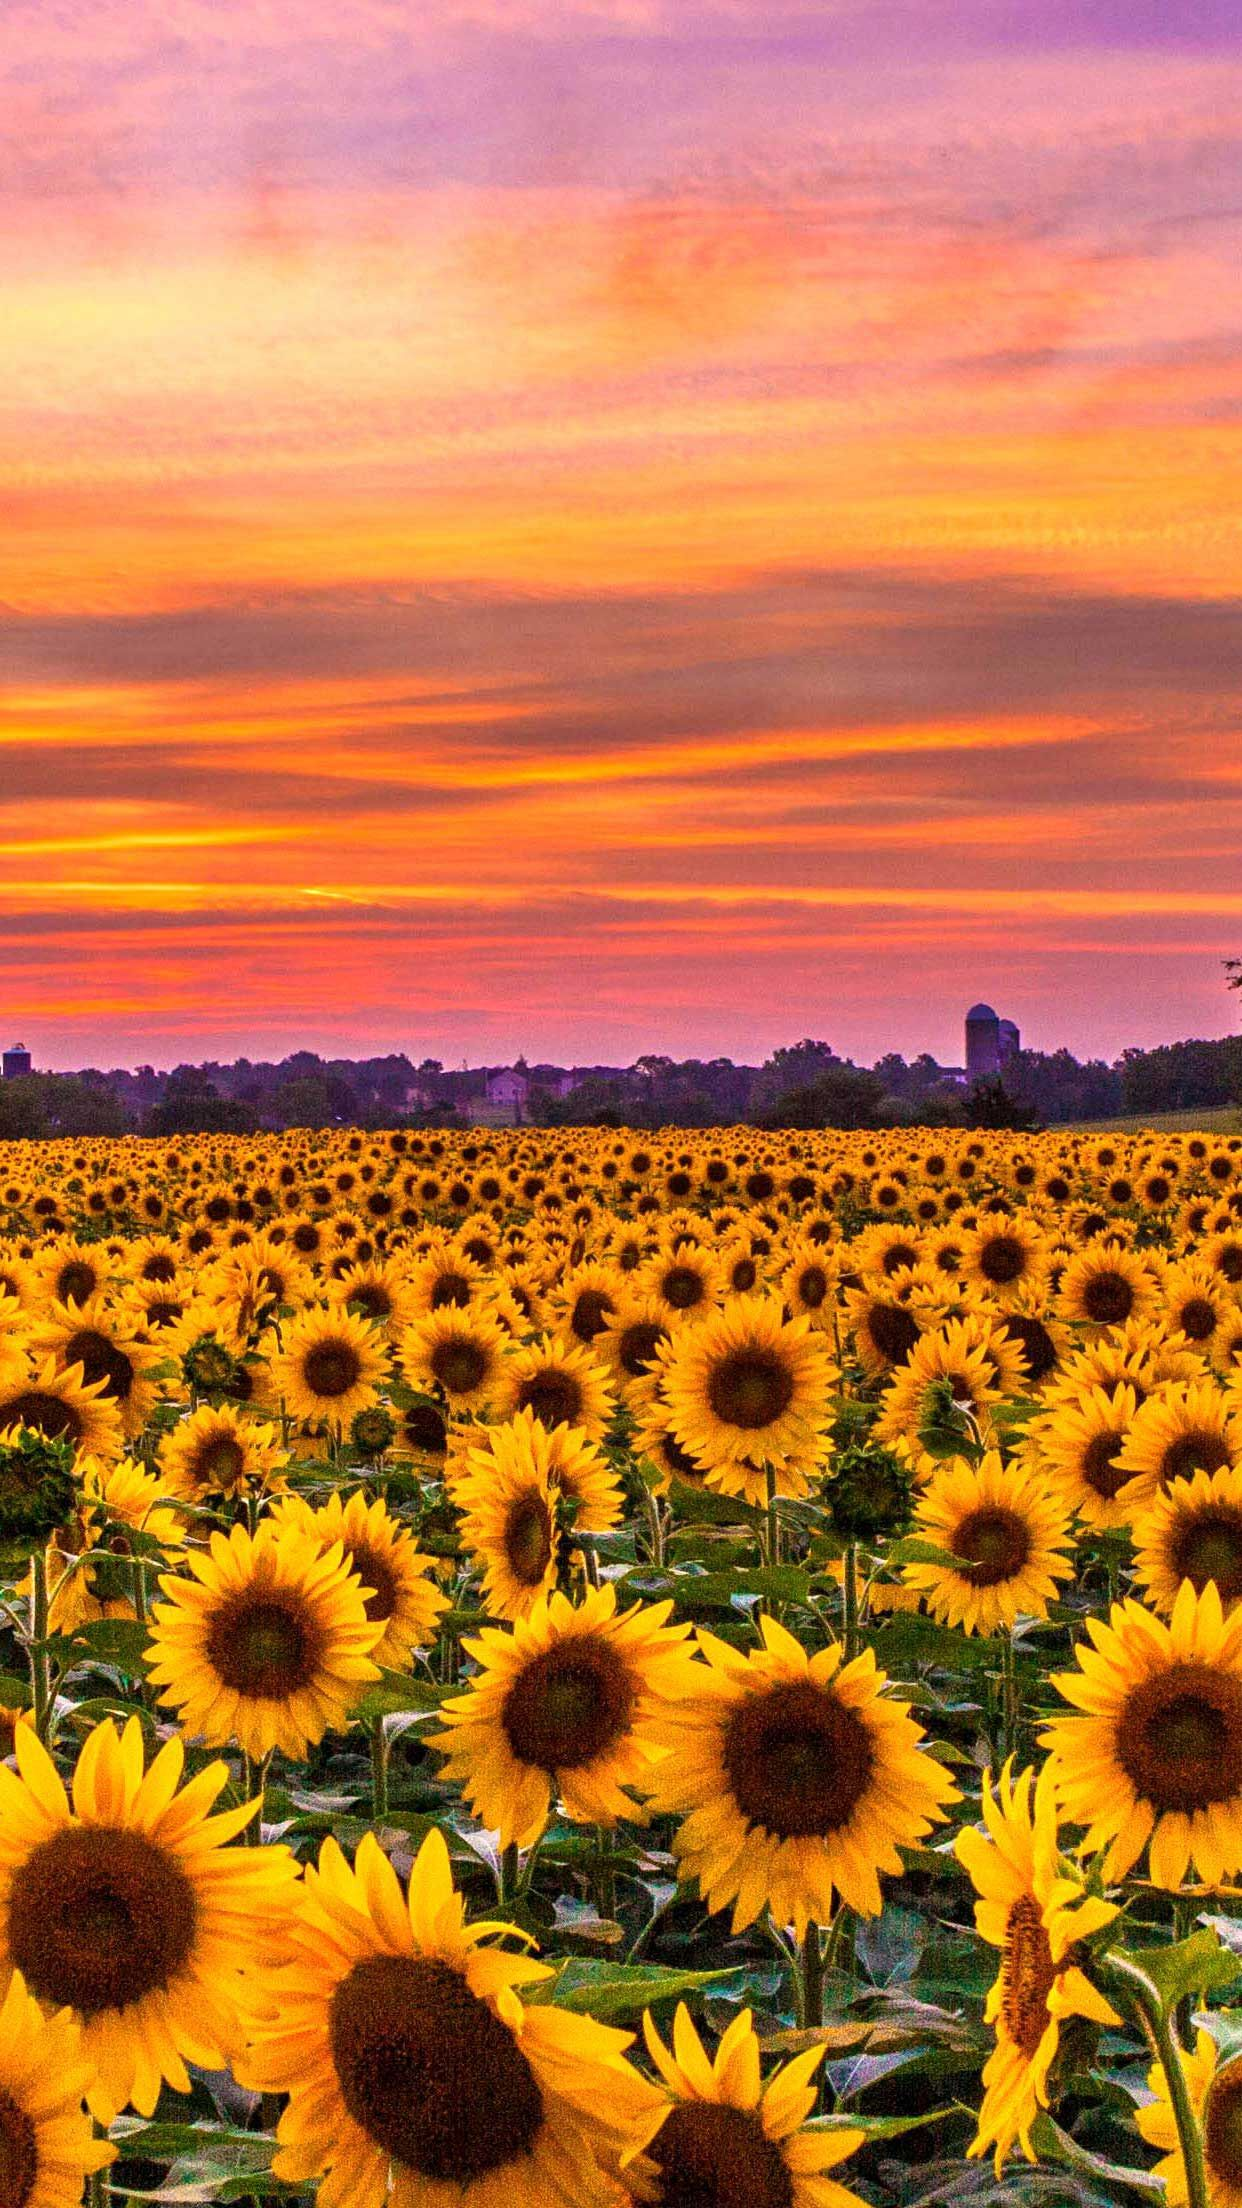 -Sunflowers field sunset Iphone Wallpapers Hd in 2020 ...